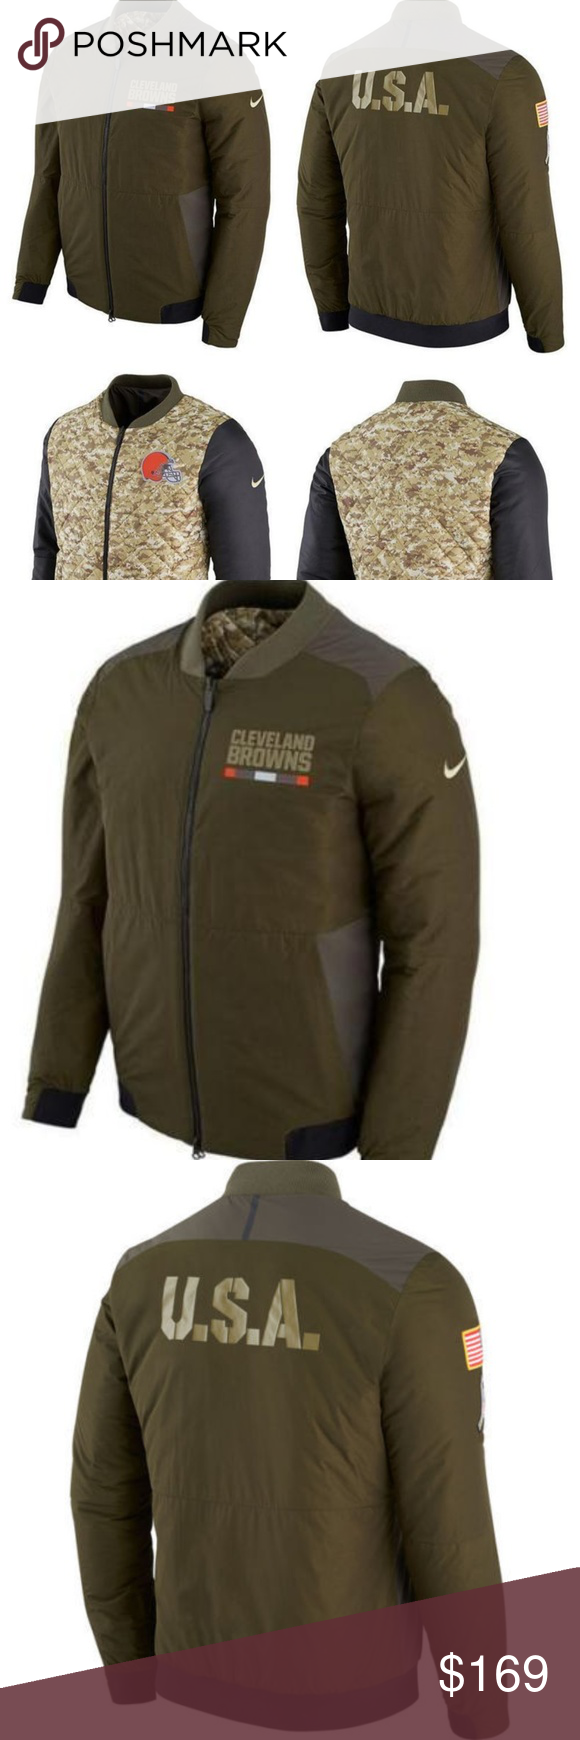 86d4c00814a Nike Cleveland Browns NFL Reversible Bomber Jacket Cleveland Browns 2017  NFL Nike Salute to Service Reversible